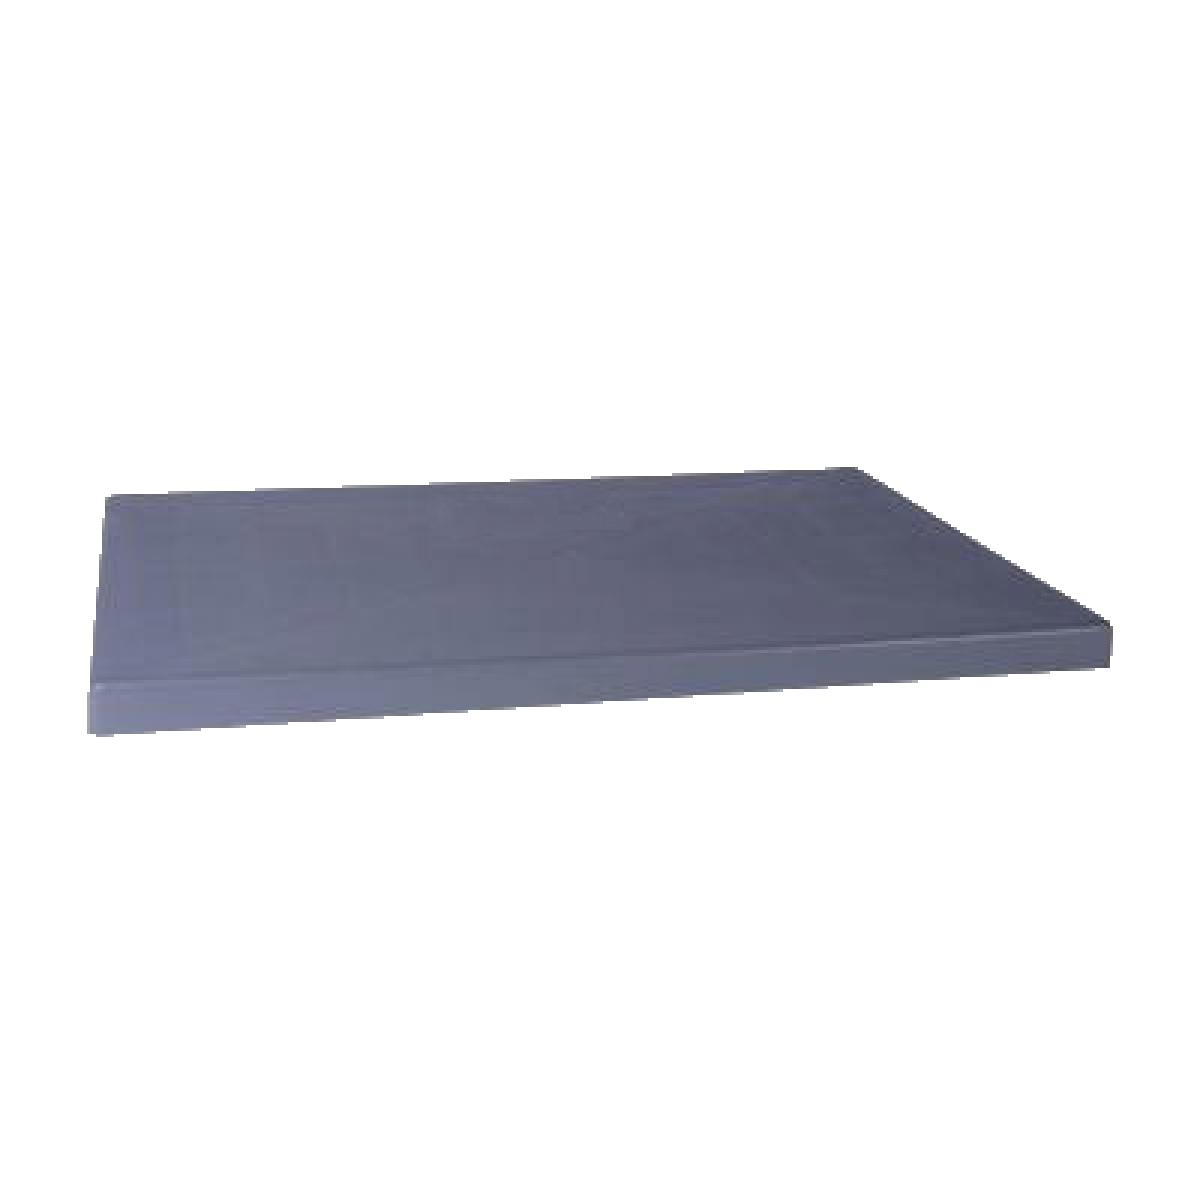 Condenser pad for mitsubishi p series for Outdoor ac unit pad